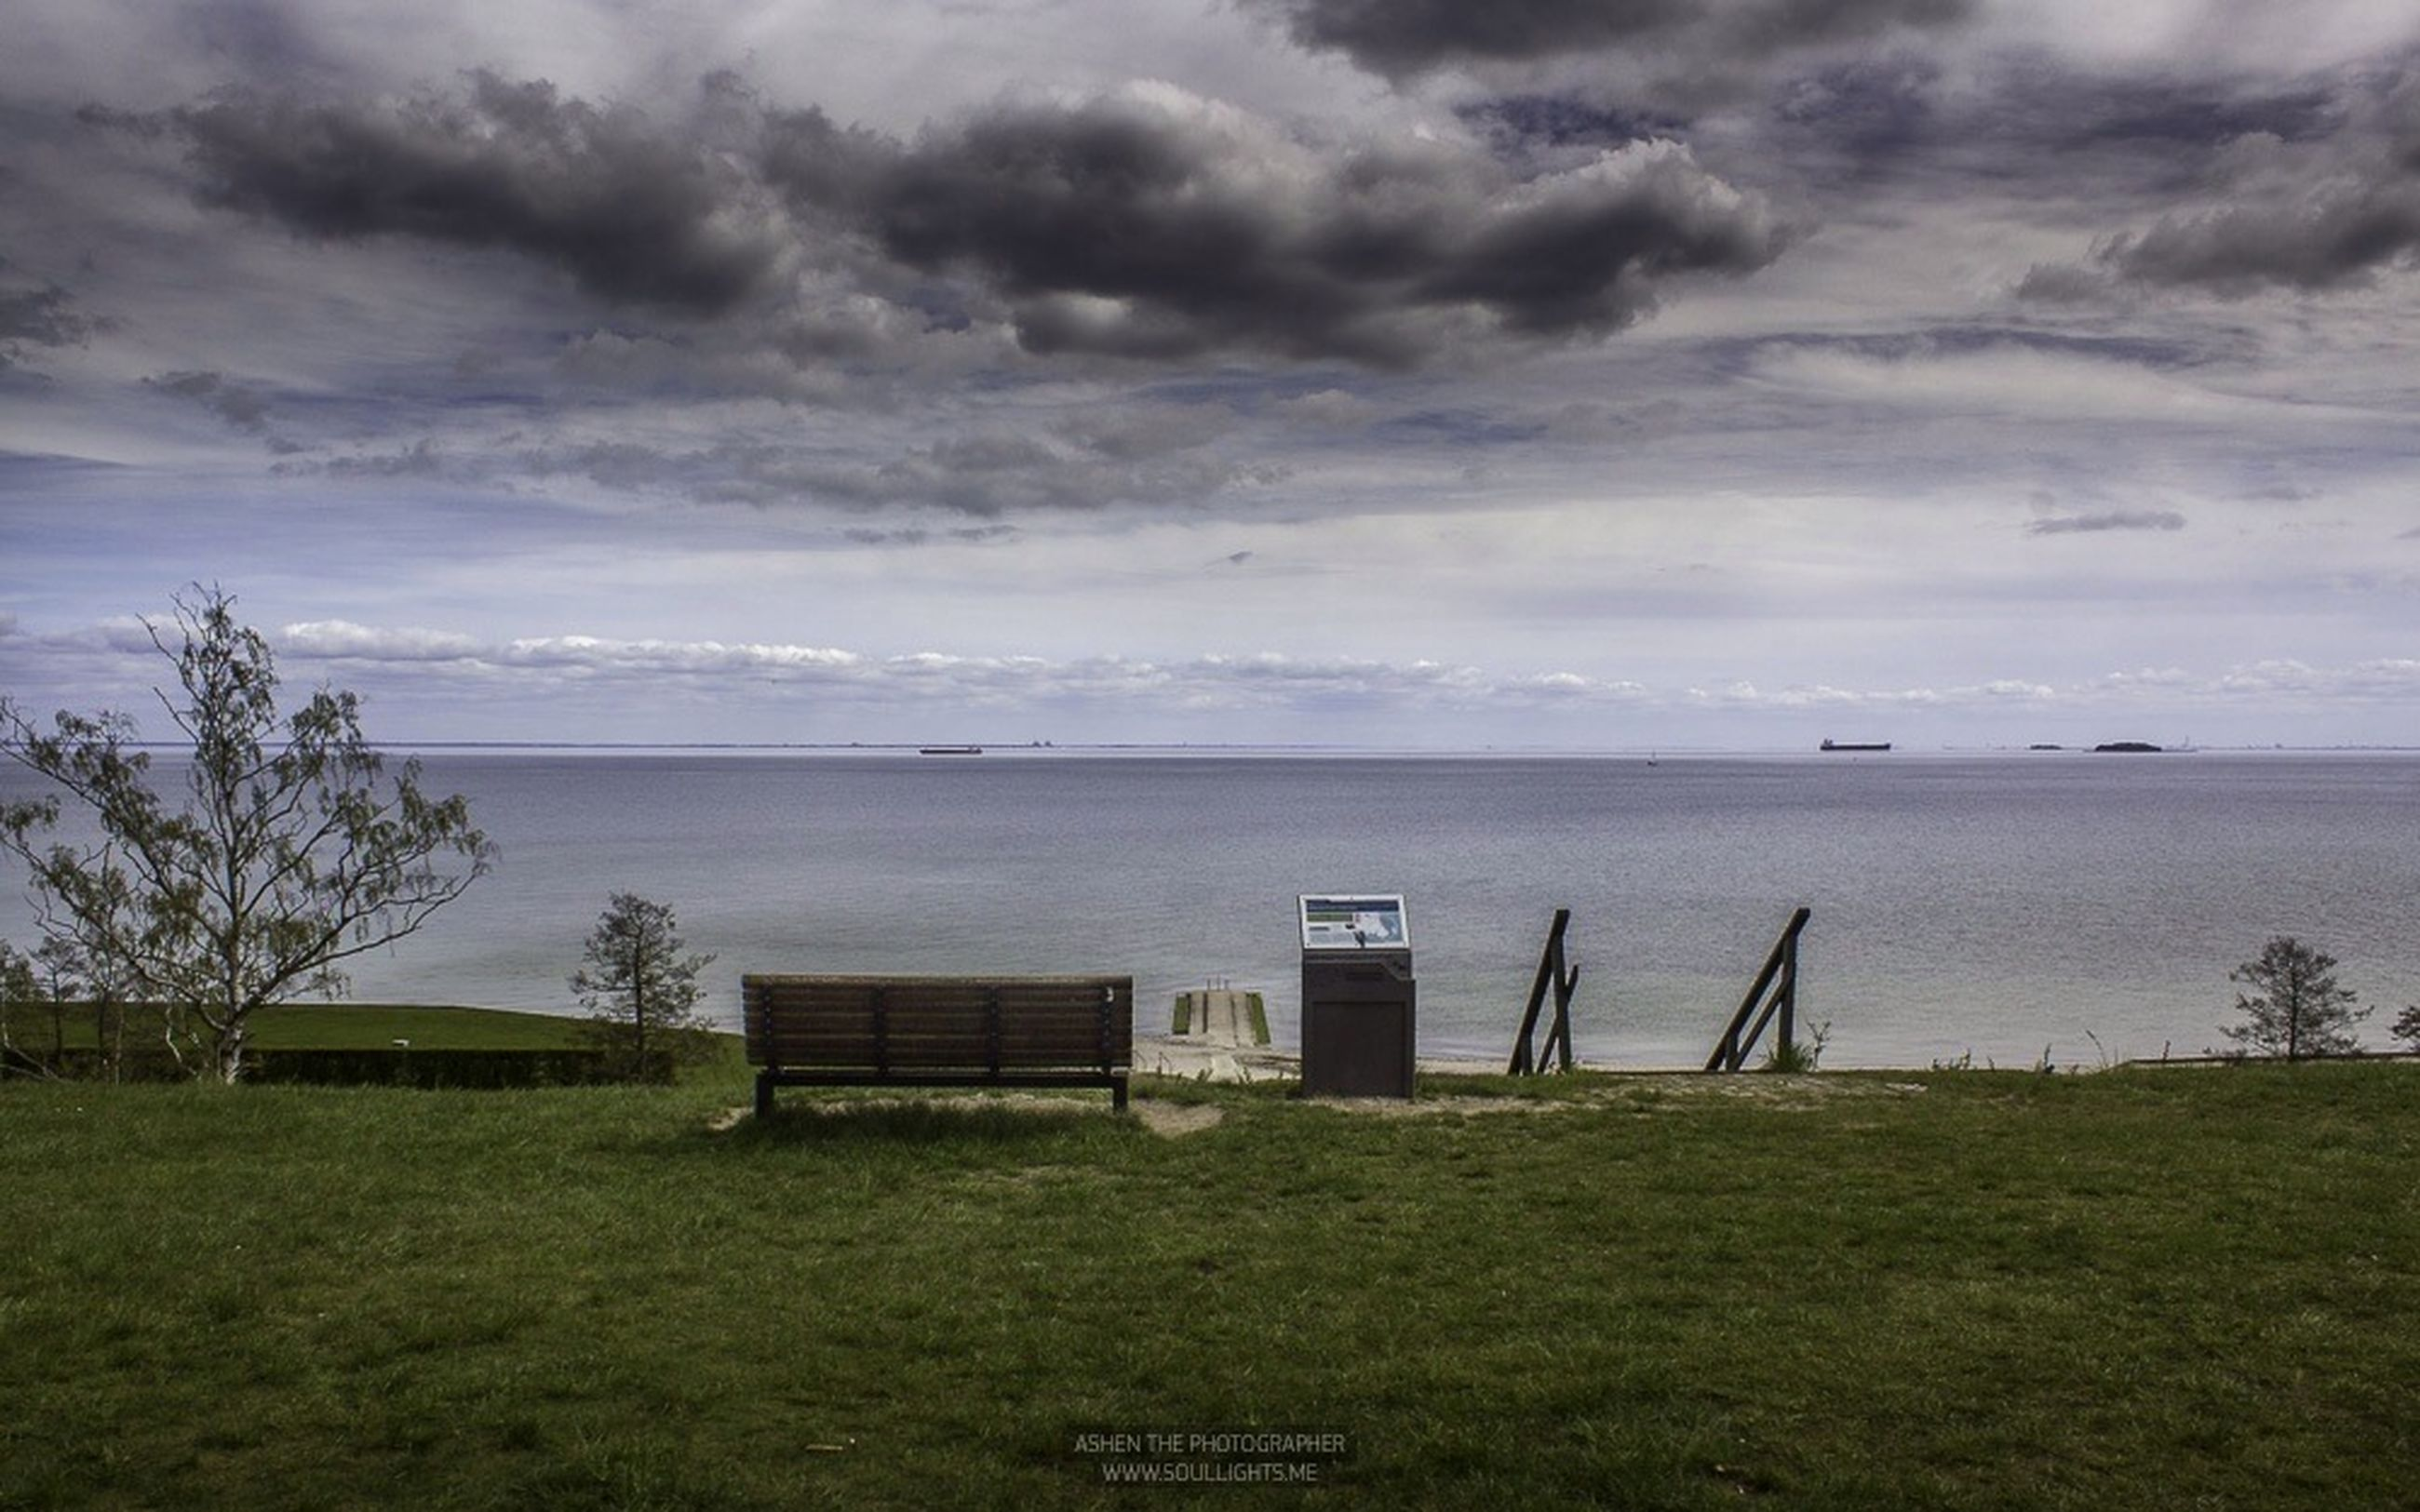 sky, cloud - sky, sea, grass, water, horizon over water, cloudy, tranquil scene, tranquility, scenics, nature, cloud, beauty in nature, field, landscape, weather, idyllic, built structure, day, remote